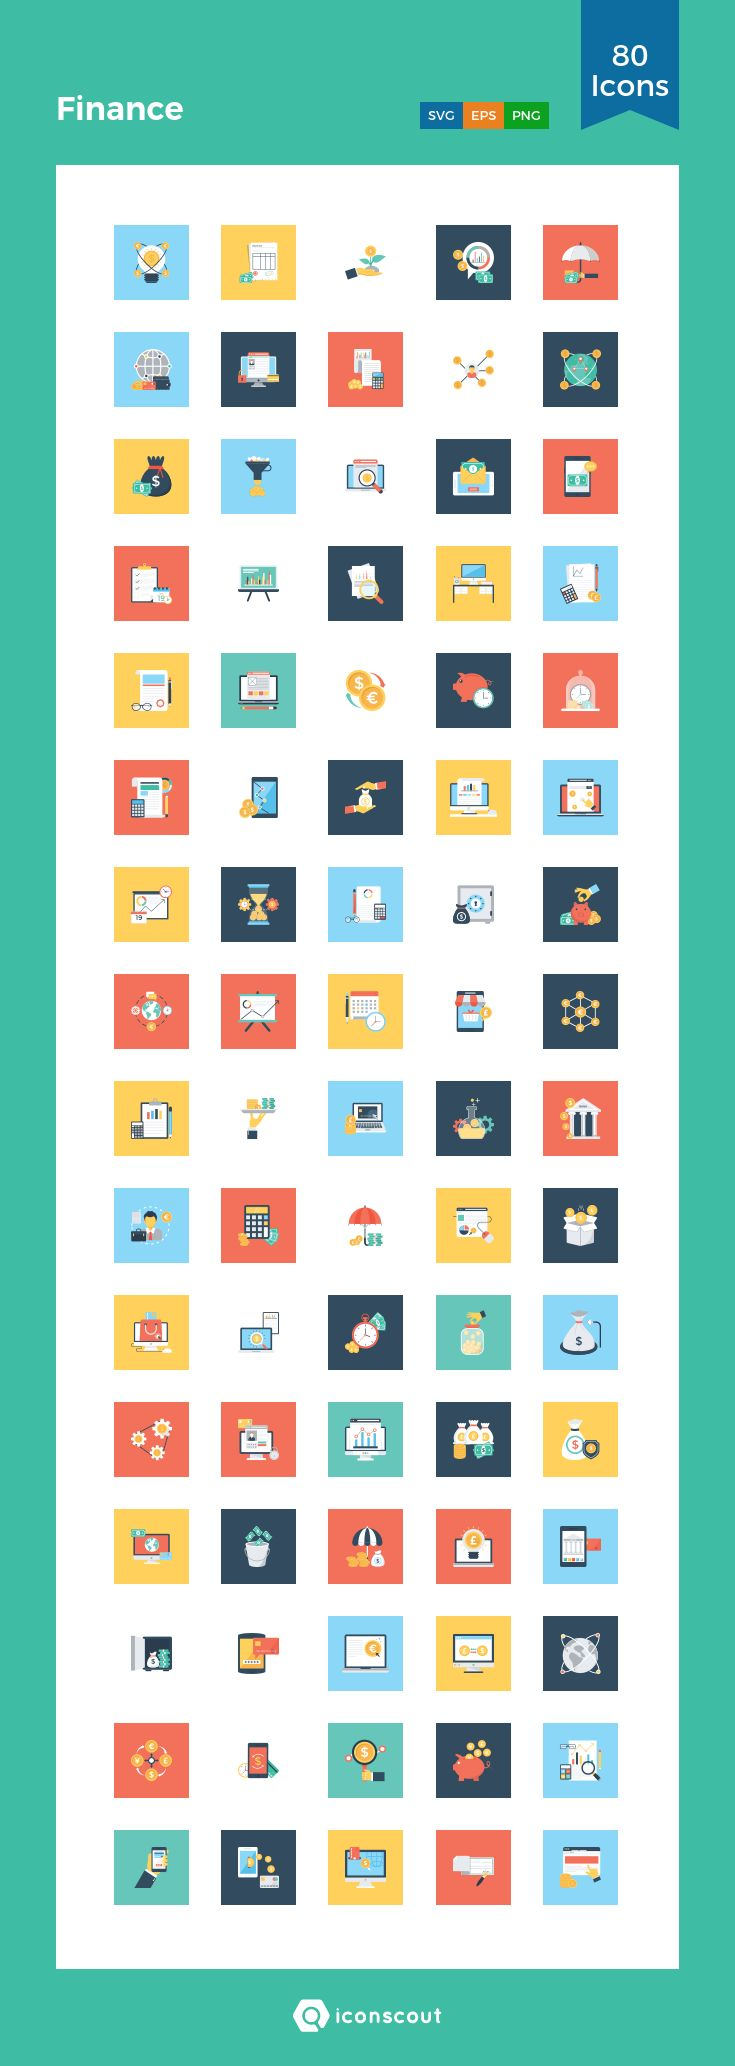 Finance  Icon Pack - 80 Flat Icons